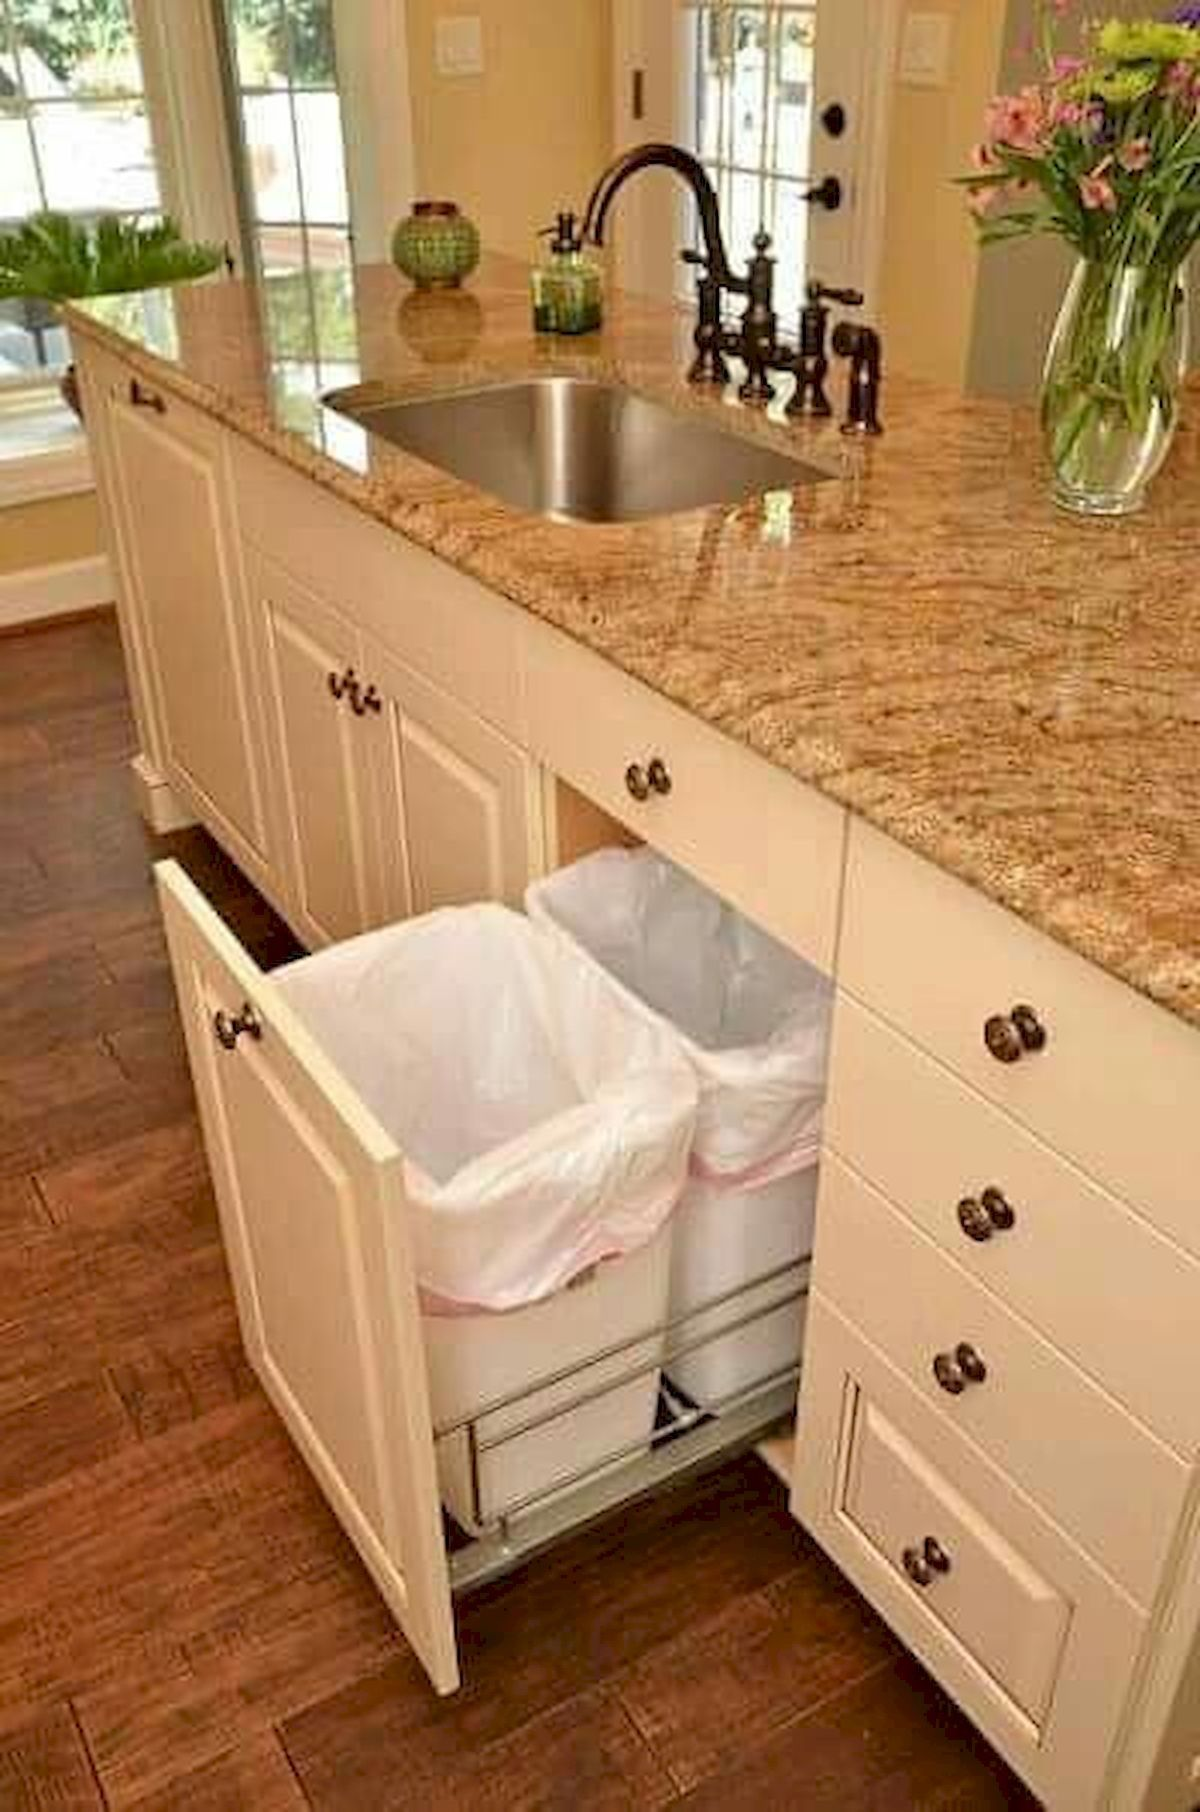 80 Lovely DIY Projects Furniture Kitchen Storage Design Ideas -   23 diy projects Storage kitchen cabinets ideas